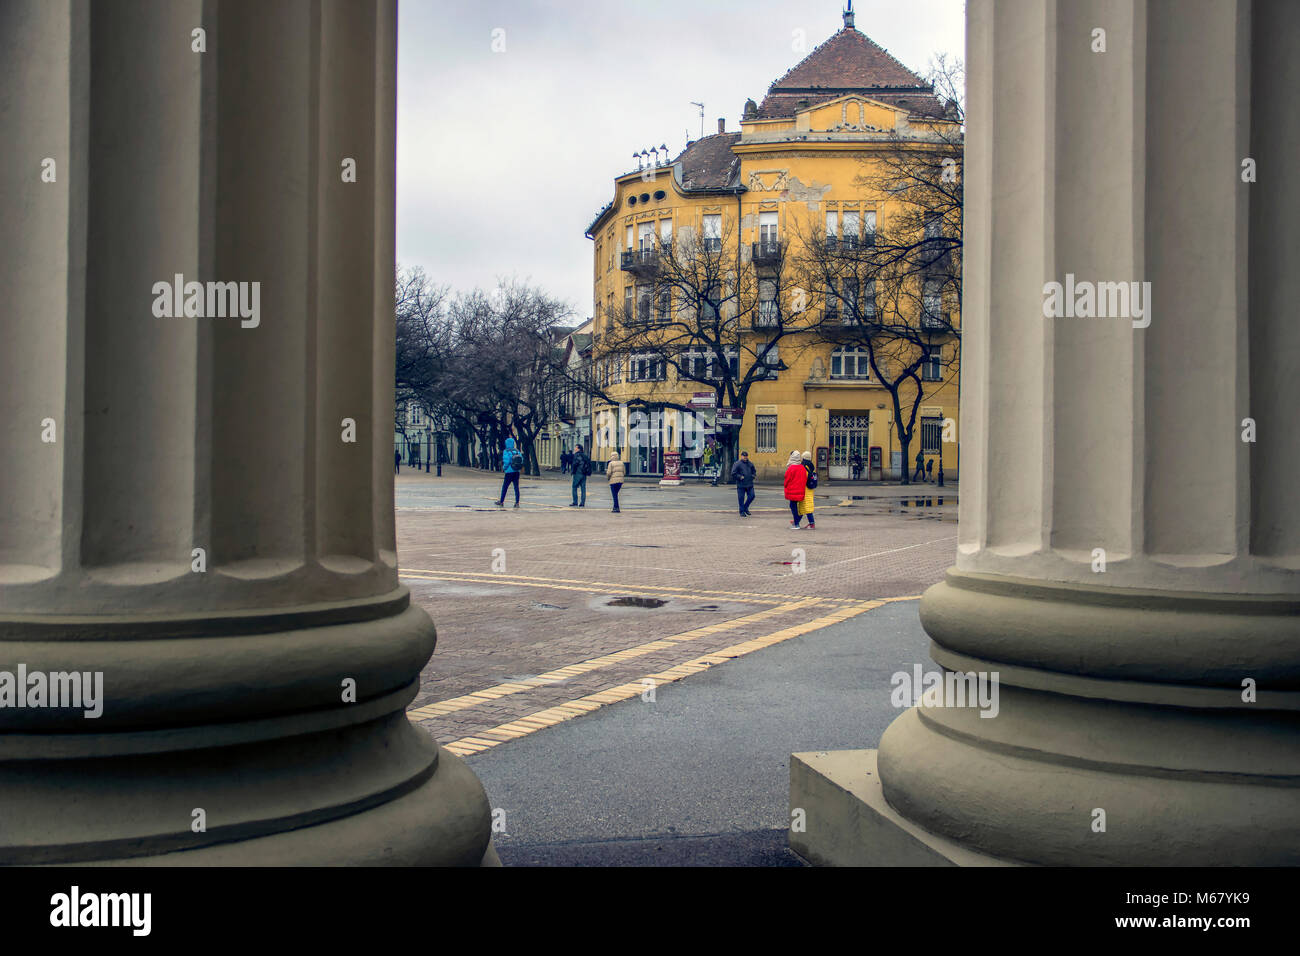 SUBOTICA, VOJVODINA, SERBIA - A view at the Square of Freedom, located in the city center, from between the pillars - Stock Image